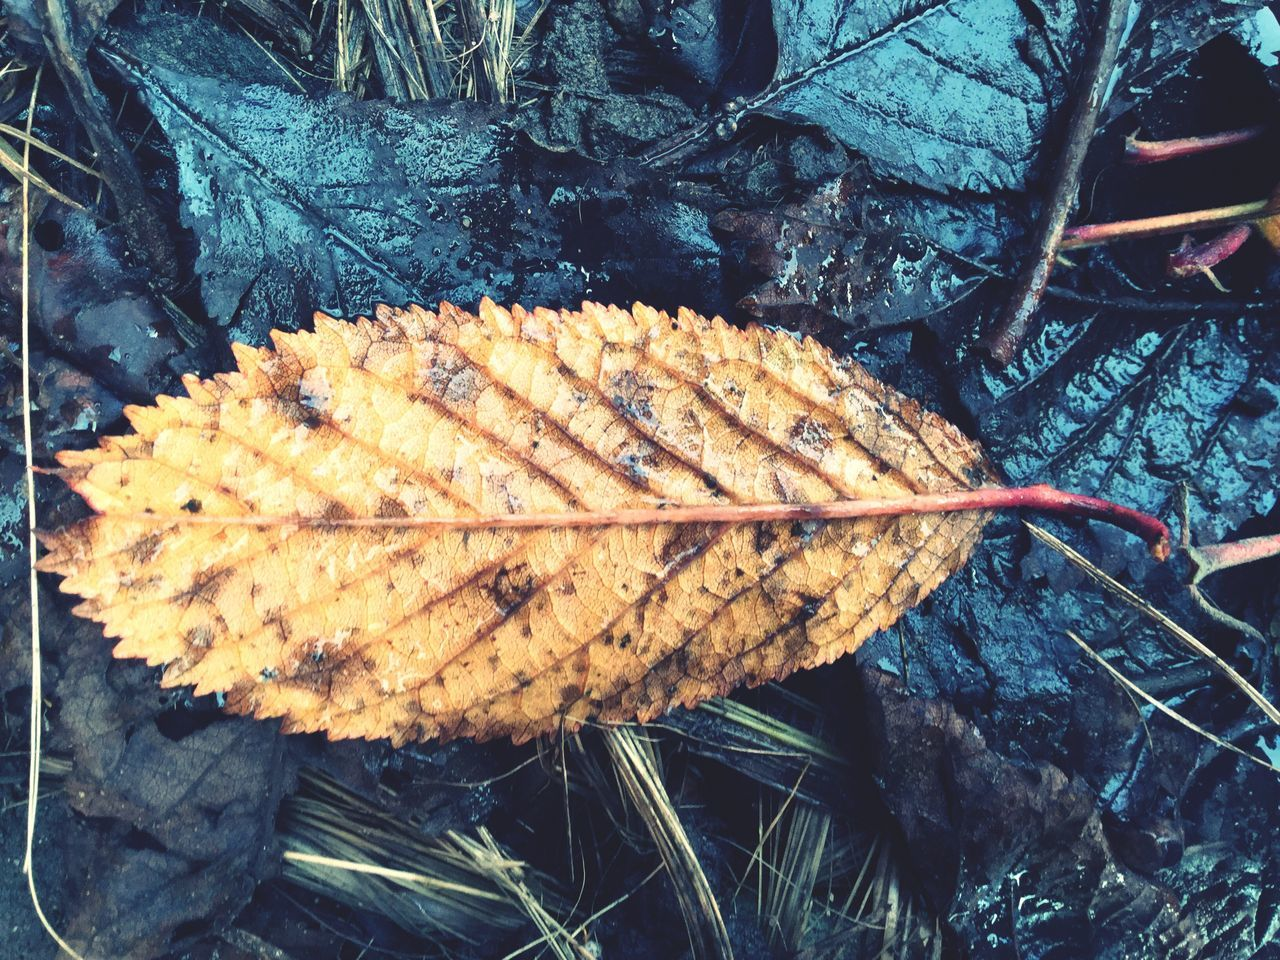 leaf, dry, change, day, nature, outdoors, close-up, autumn, no people, plant, fragility, beauty in nature, maple